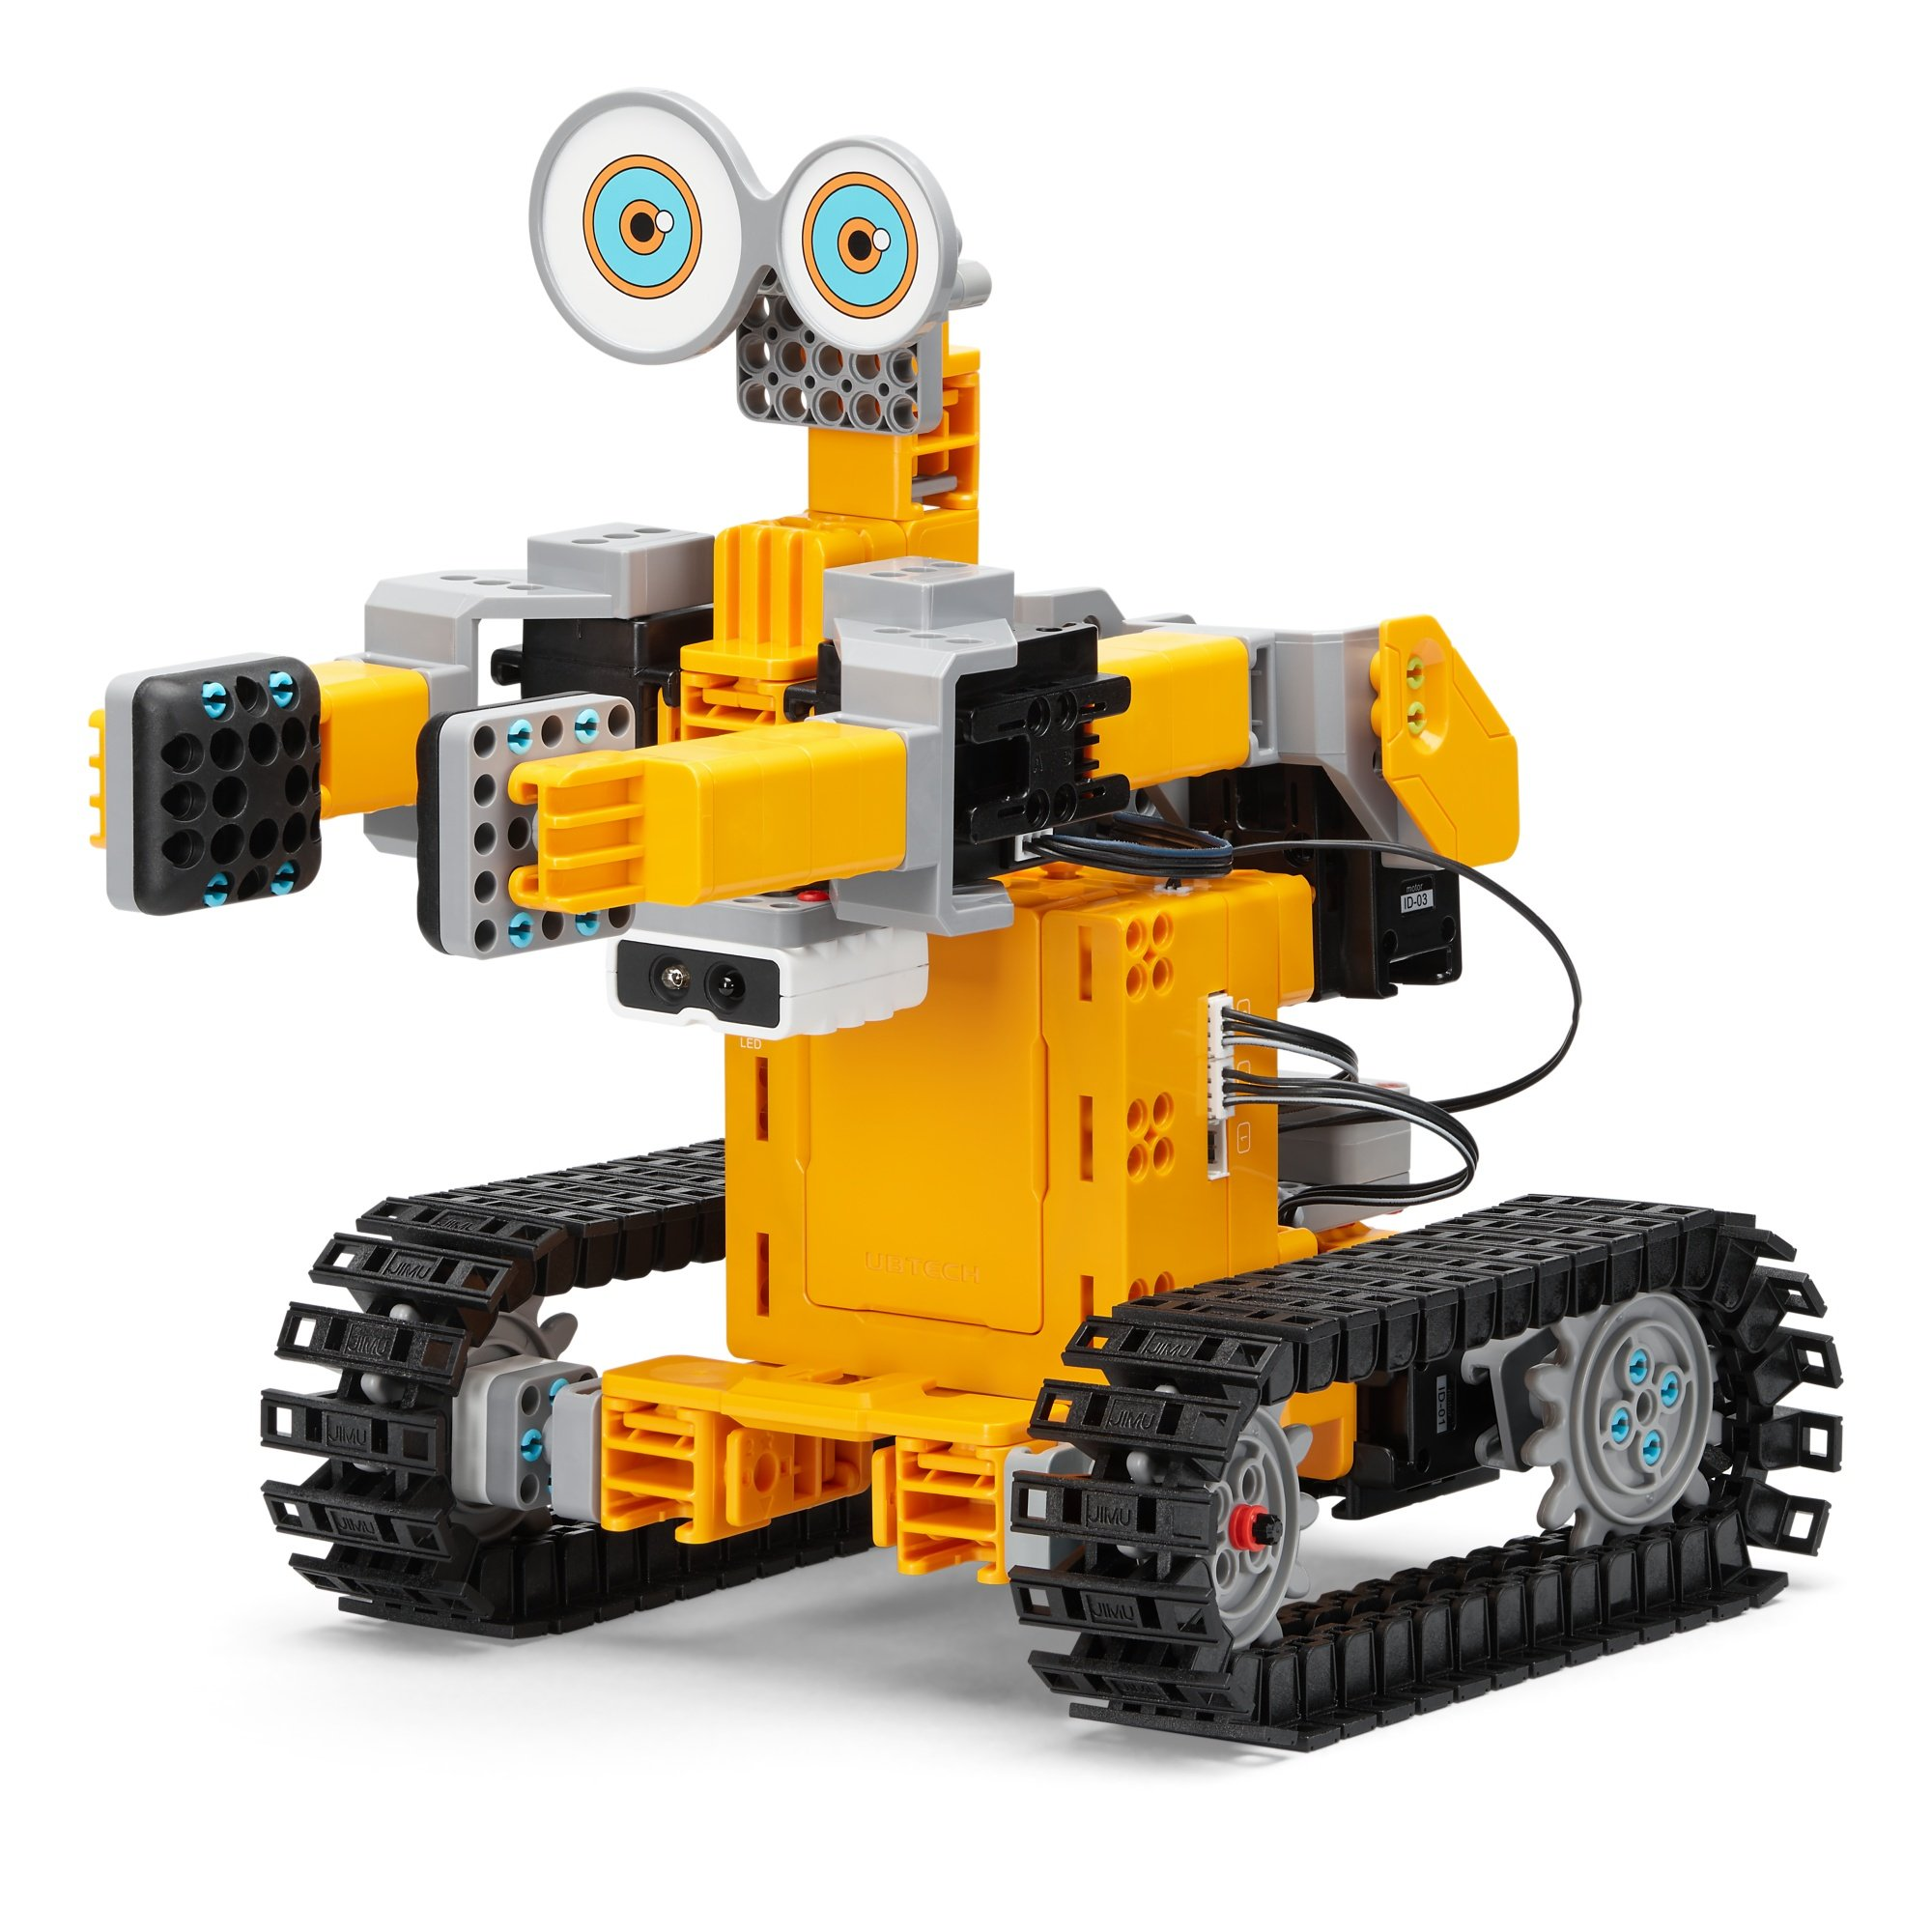 UBTECH Jimu Robot Tankbot App Enabled Stem Learning Robotic Building Block Kit